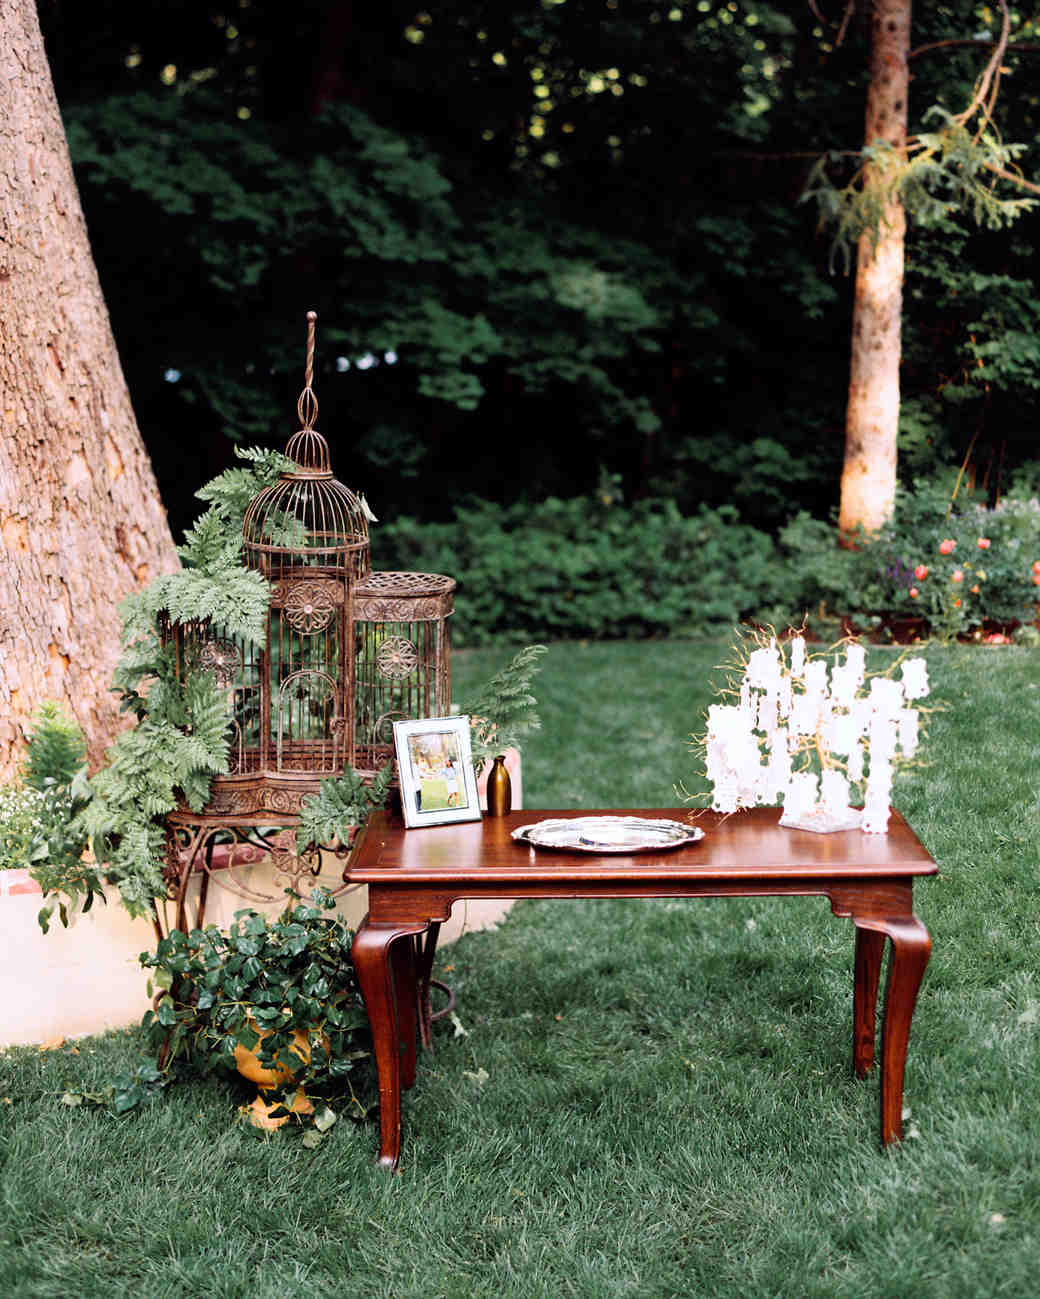 ally-adam-wedding-table-052-s111818-0215.jpg